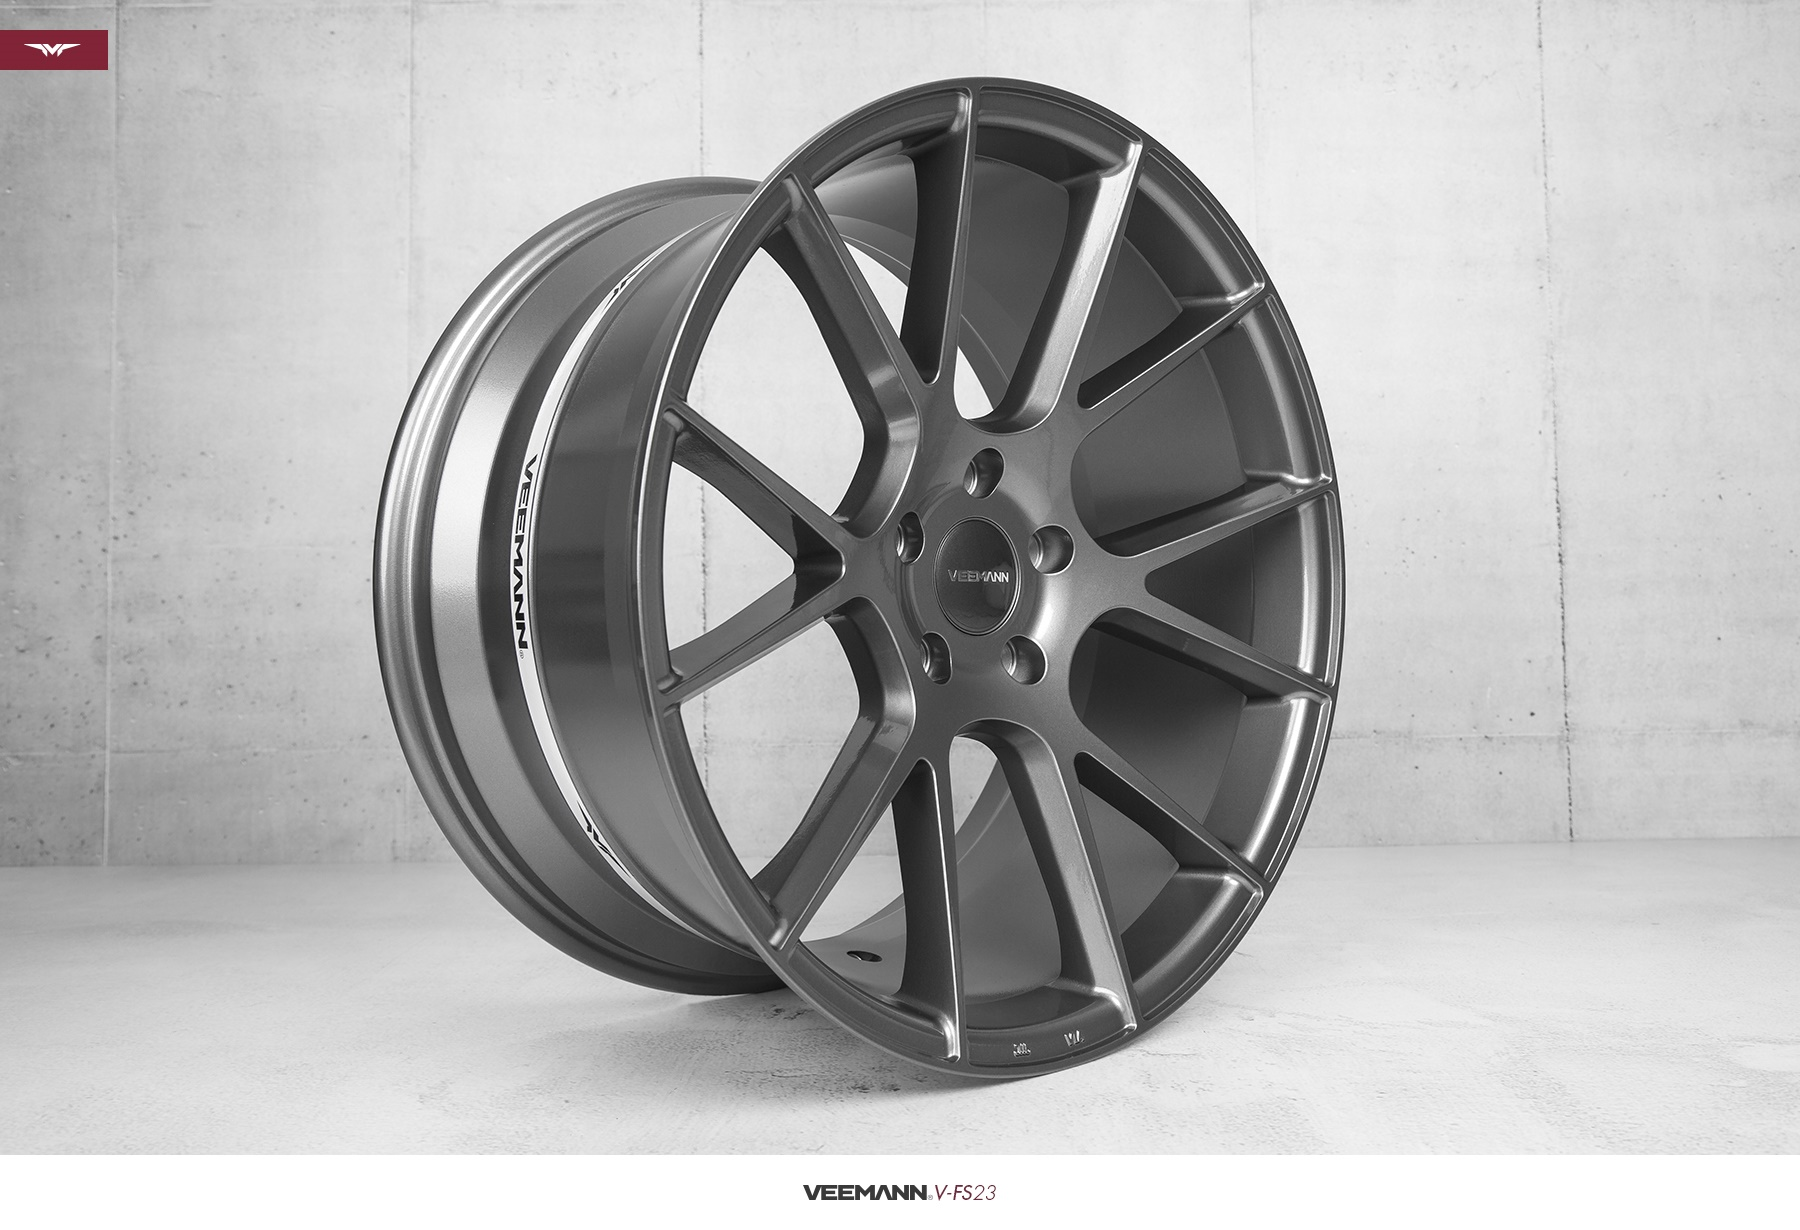 New 18 Quot Veemann V Fs23 Alloys In Gloss Graphite With Wider